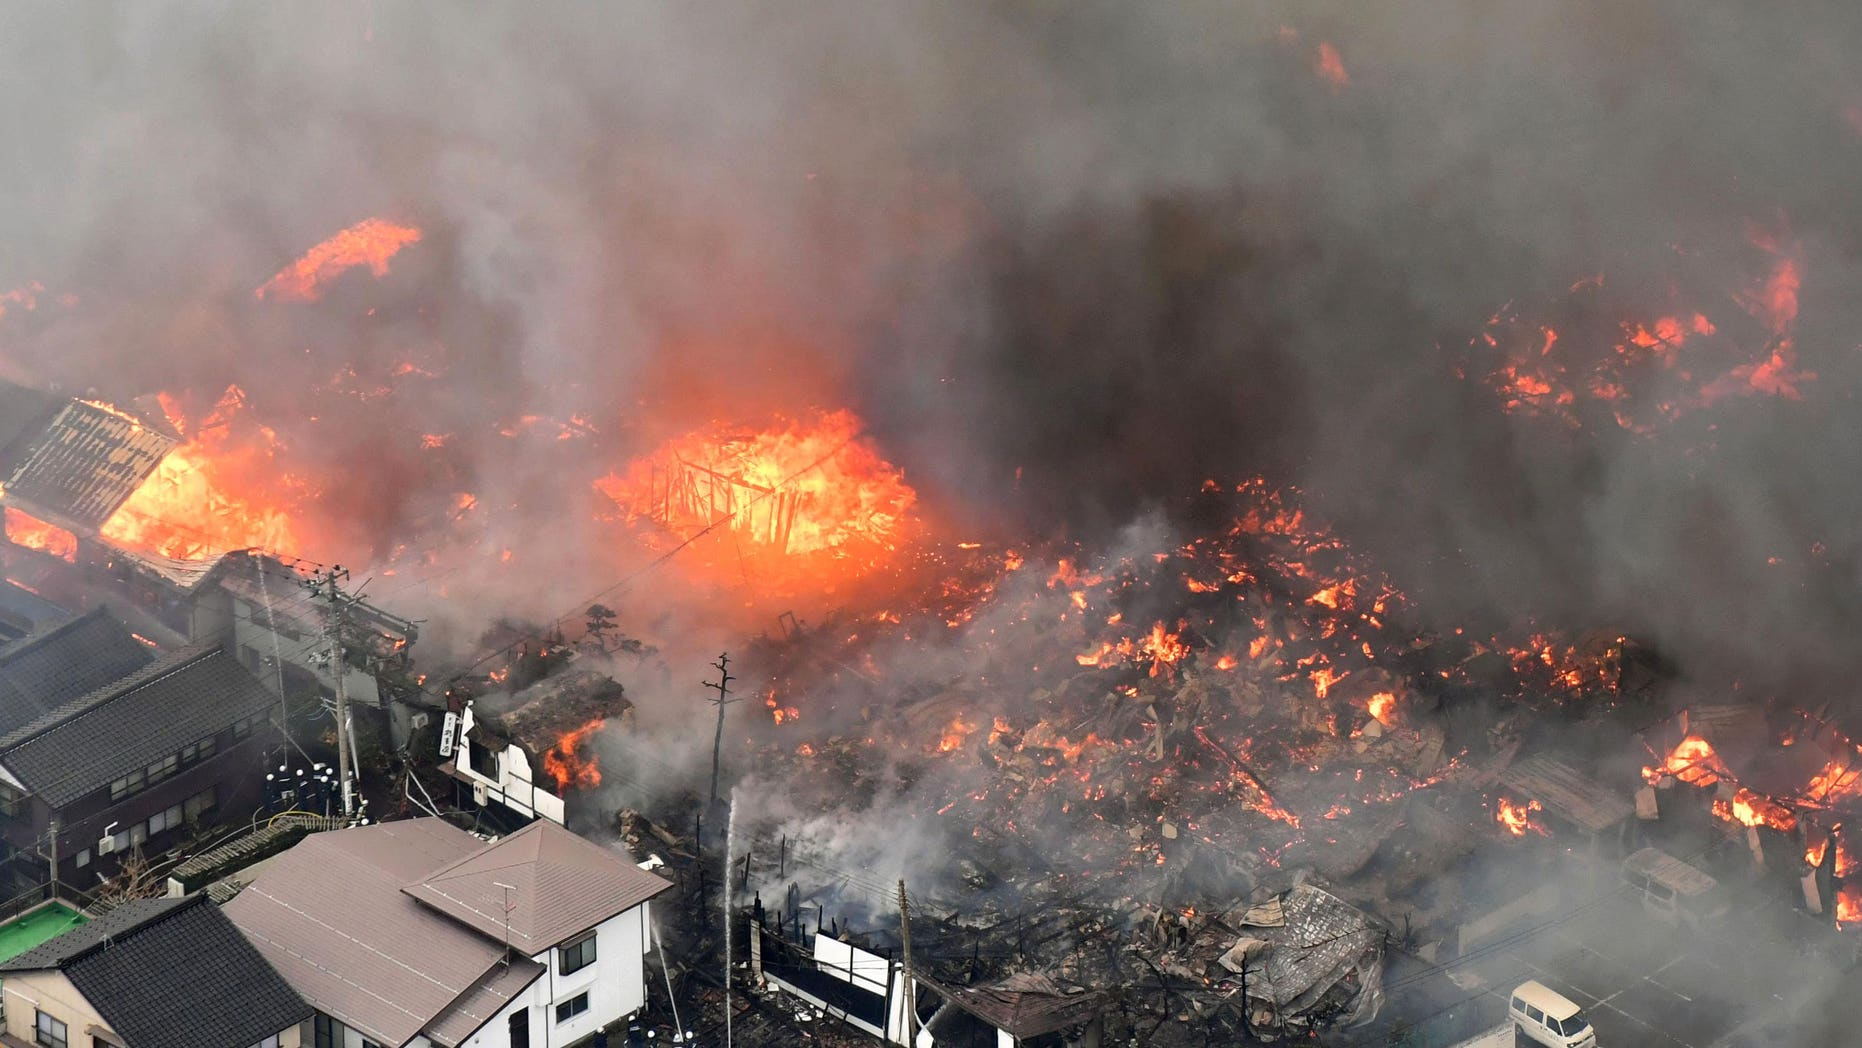 Smoke billow from houses during a fire in Itoigawa, northern Japan, Thursday, Dec. 22, 2016.  A fire whipped by high winds has spread to at least 140 buildings in a small Japanese city on the Japan Sea coast. The fire department says the blaze started at a restaurant in Itoigawa city Thursday morning. By mid-afternoon, 140 houses and other buildings had caught fire, and the fire is still spreading.  (Kyodo News via AP)